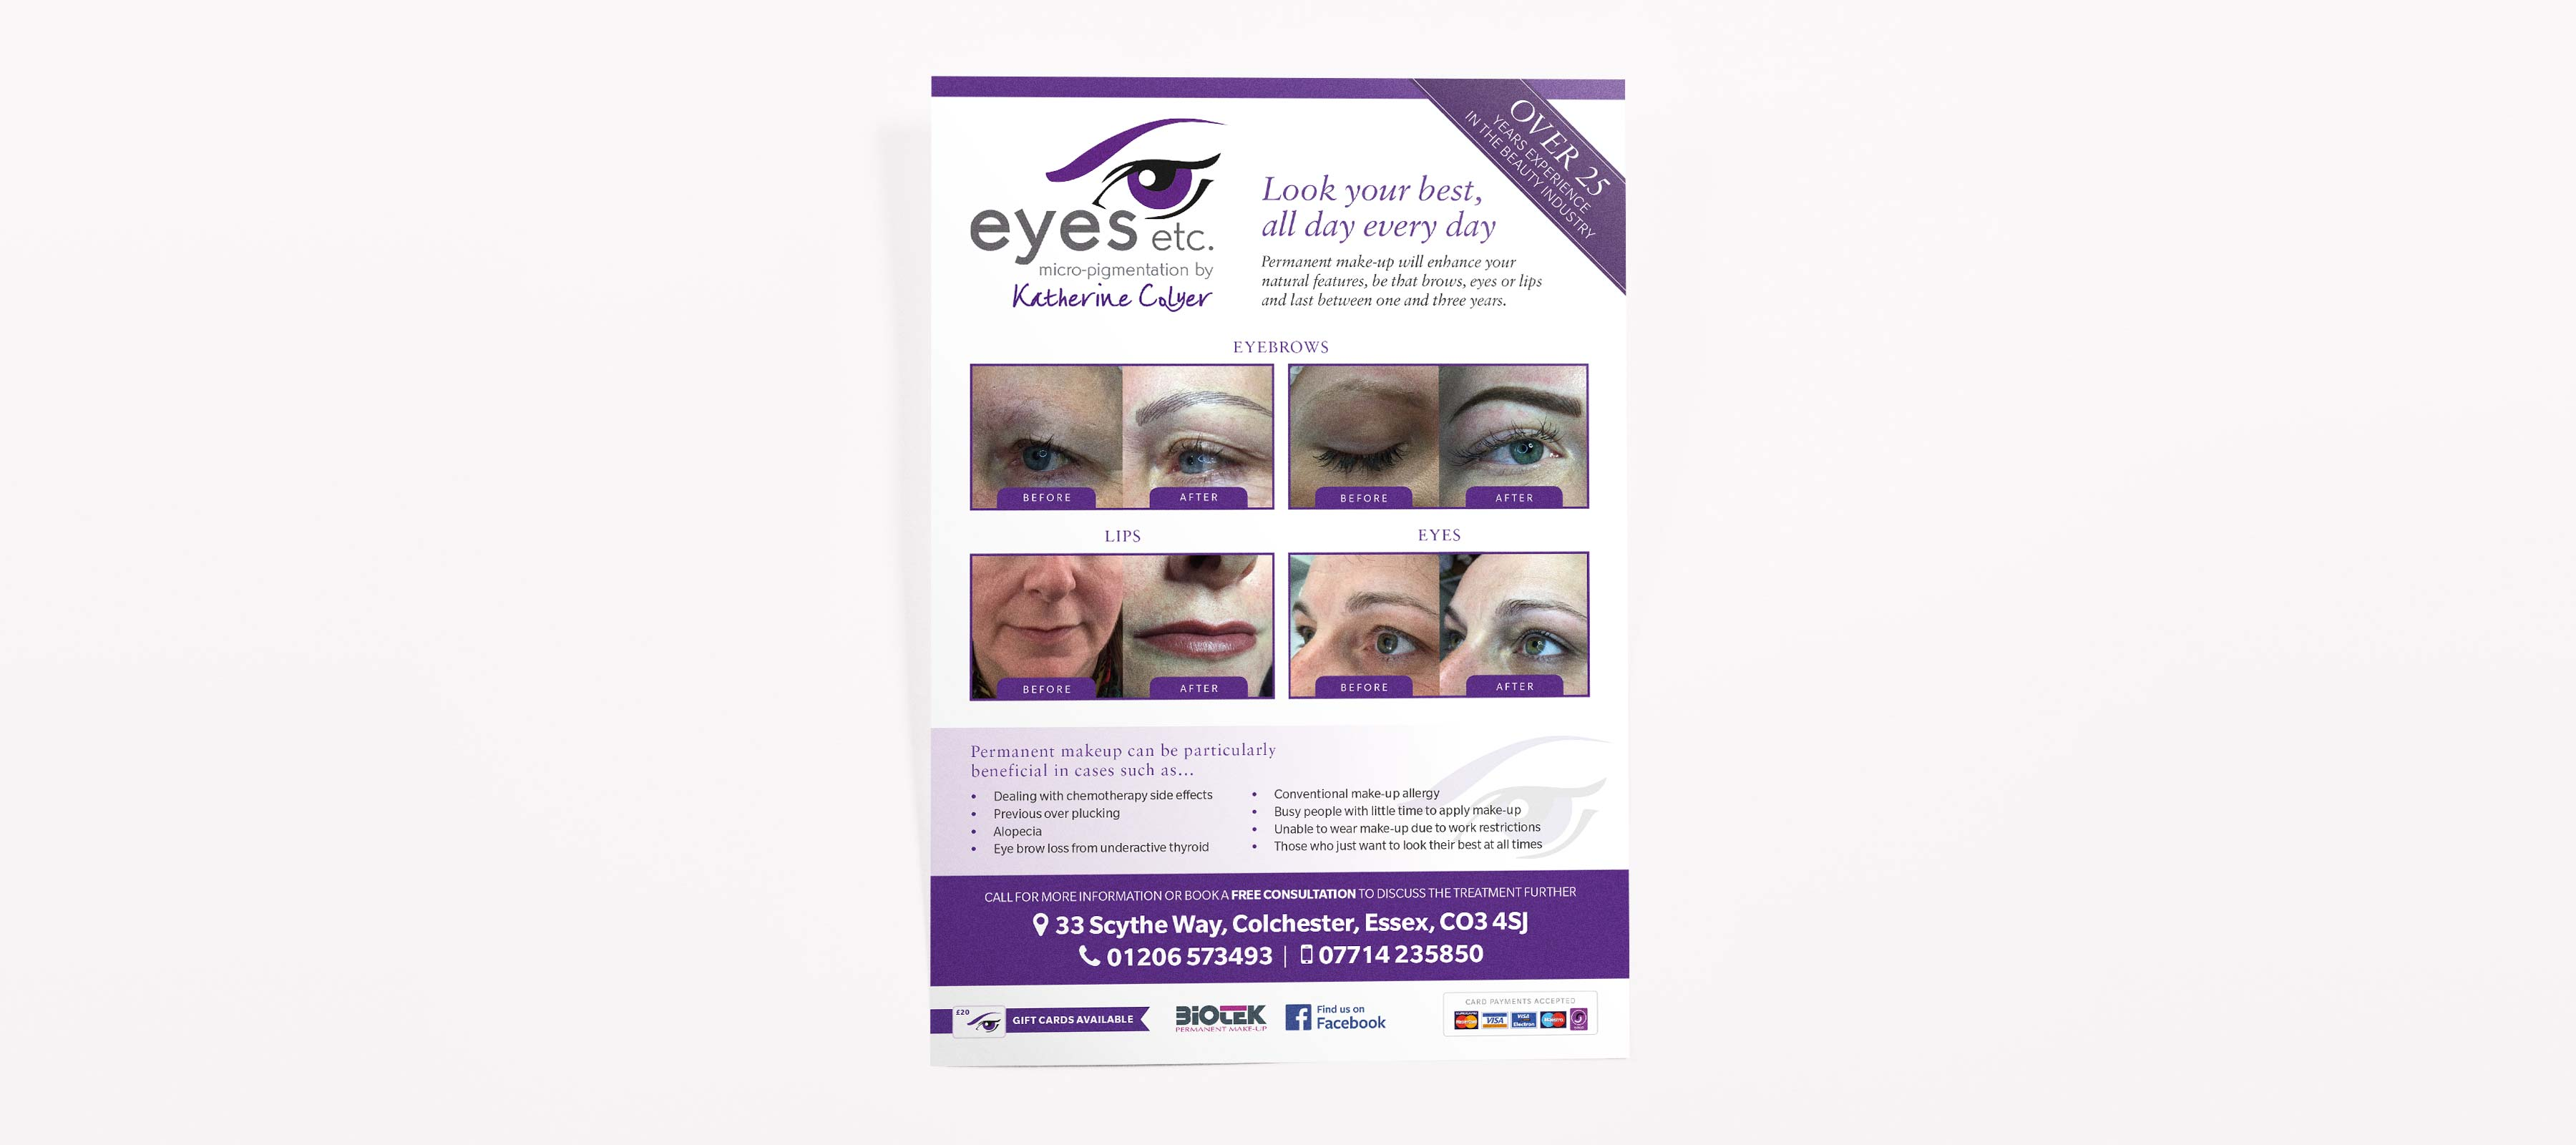 Poster design & print for Eyes Etc in Colchester, Essex.